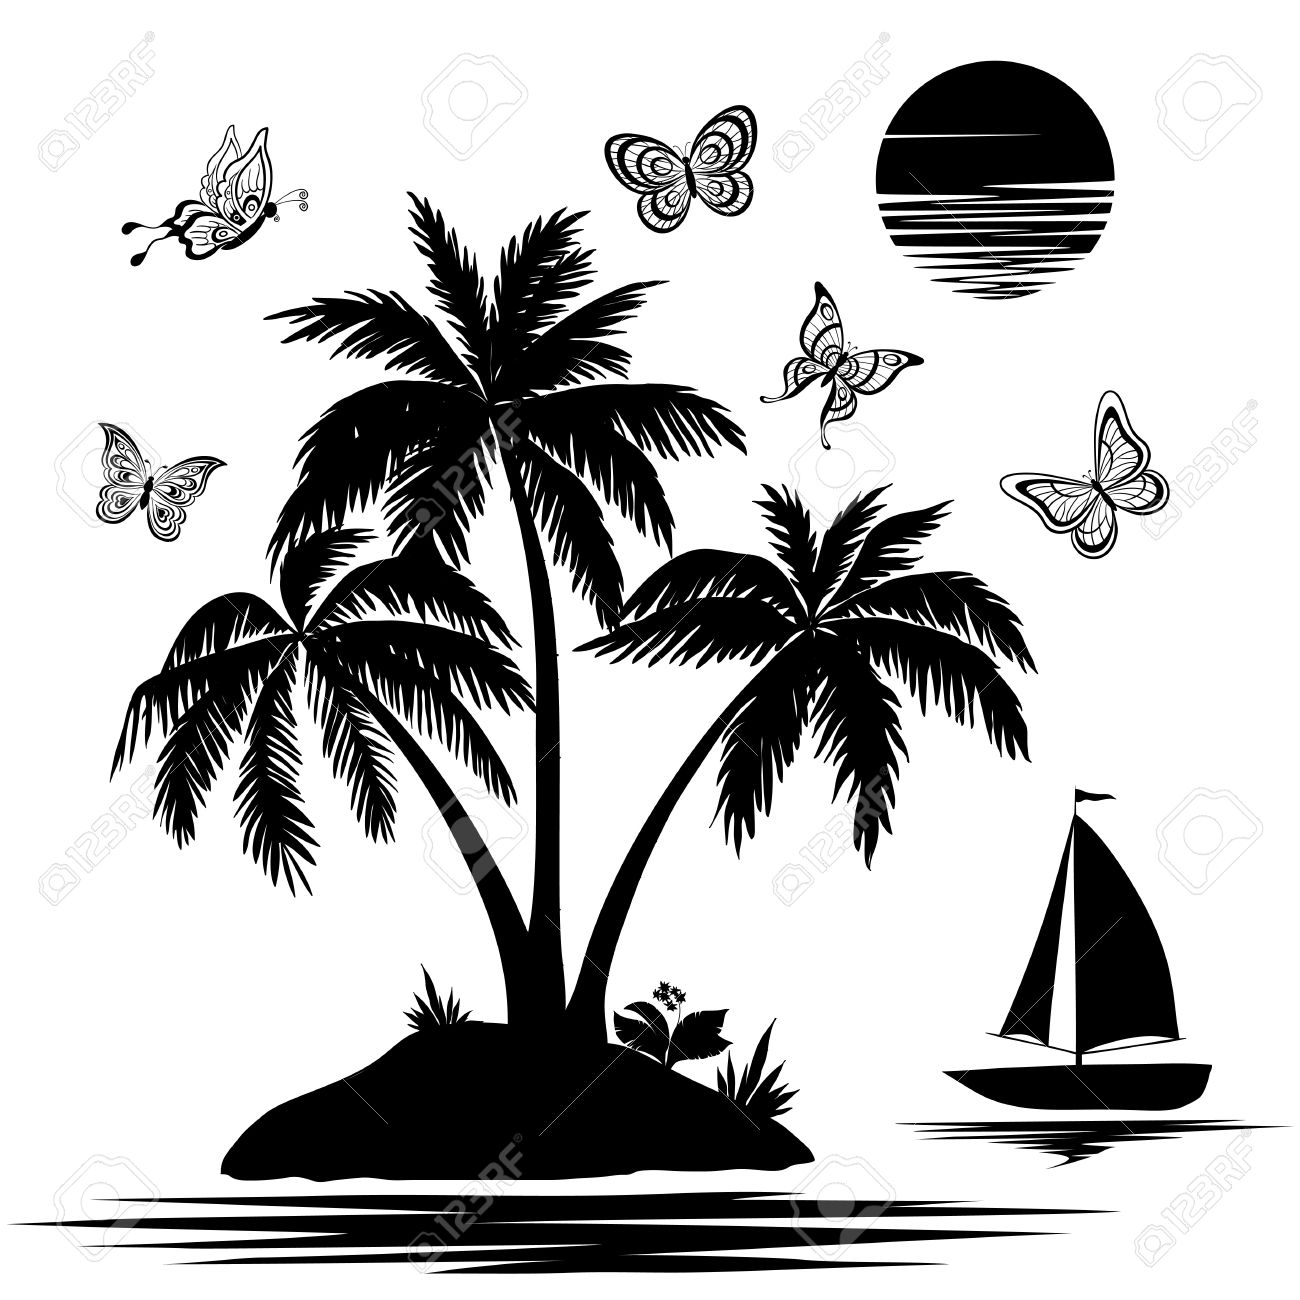 Palm Tree Tattoos Black And White Palm Tree Silhouette Tattoo